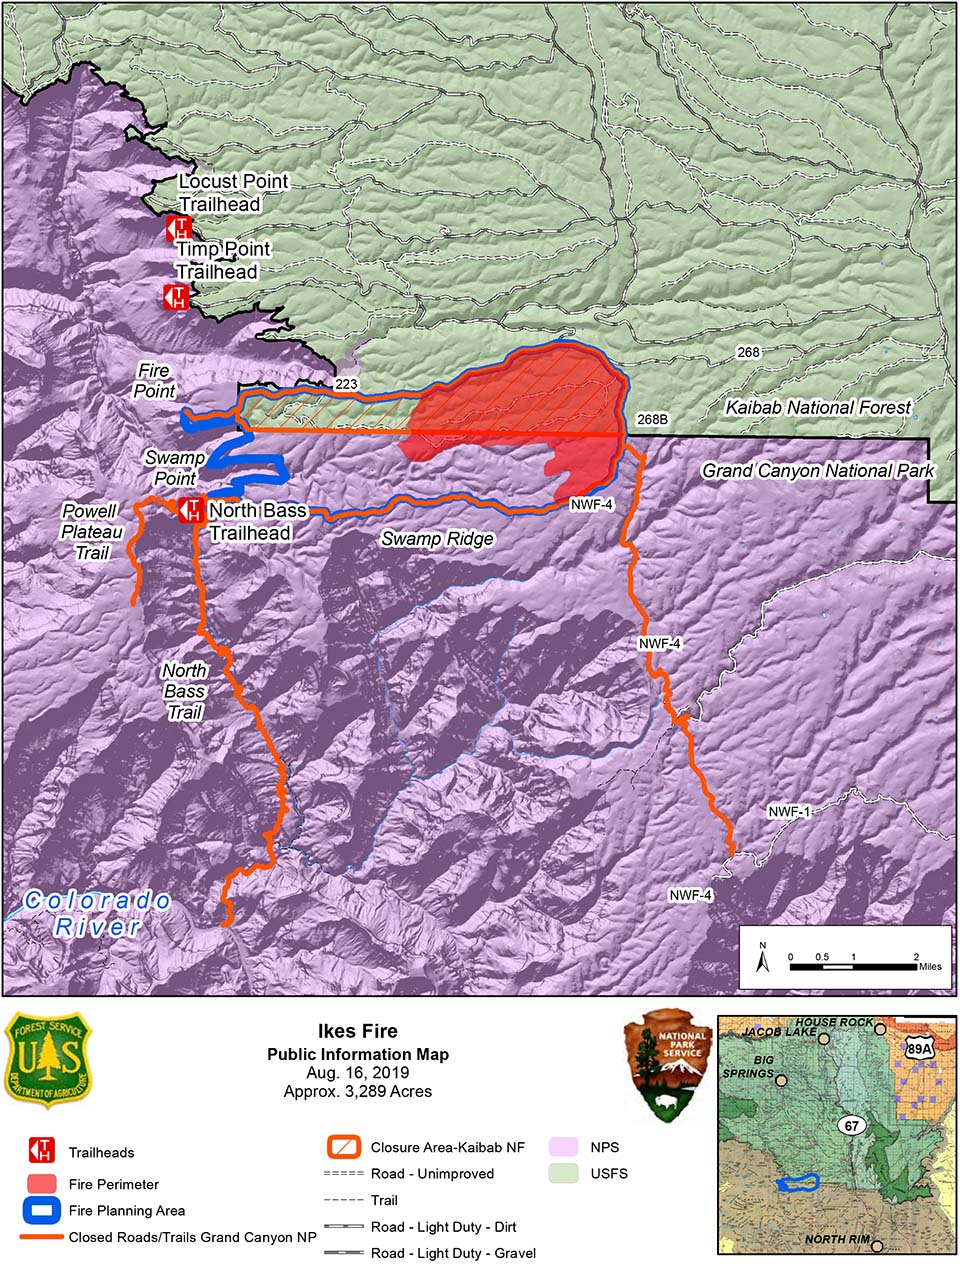 map showing the Ikes Fire containment area and they portions that have been burned, within Grand Canyon National Park and Kaibab Nat. Forest